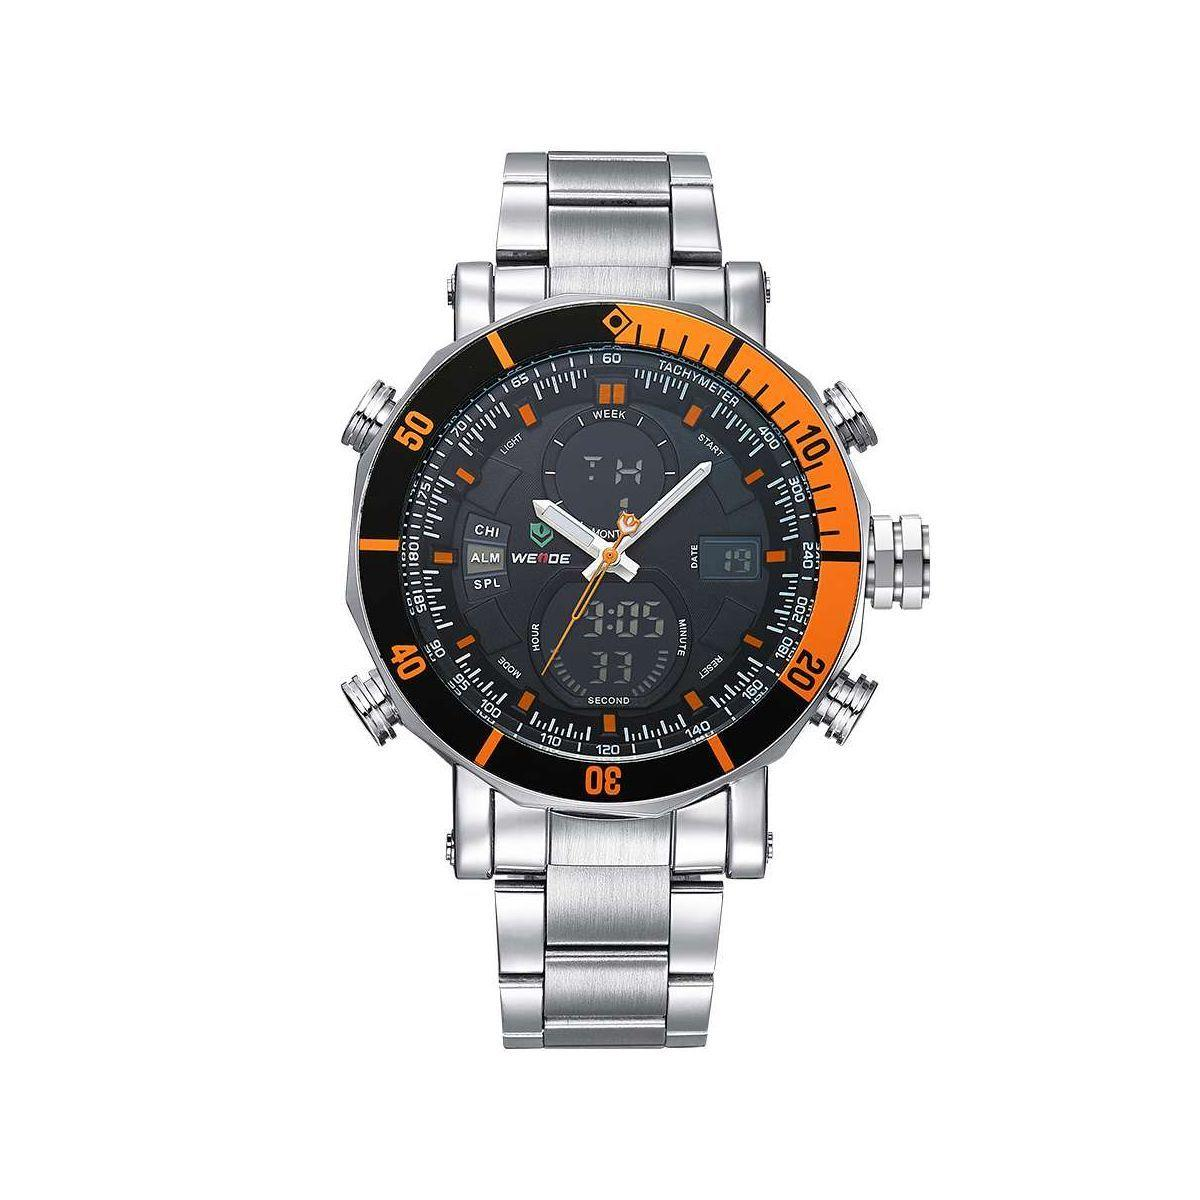 Часы Weide Orange WH5203-5C SS (WH5203-5C)